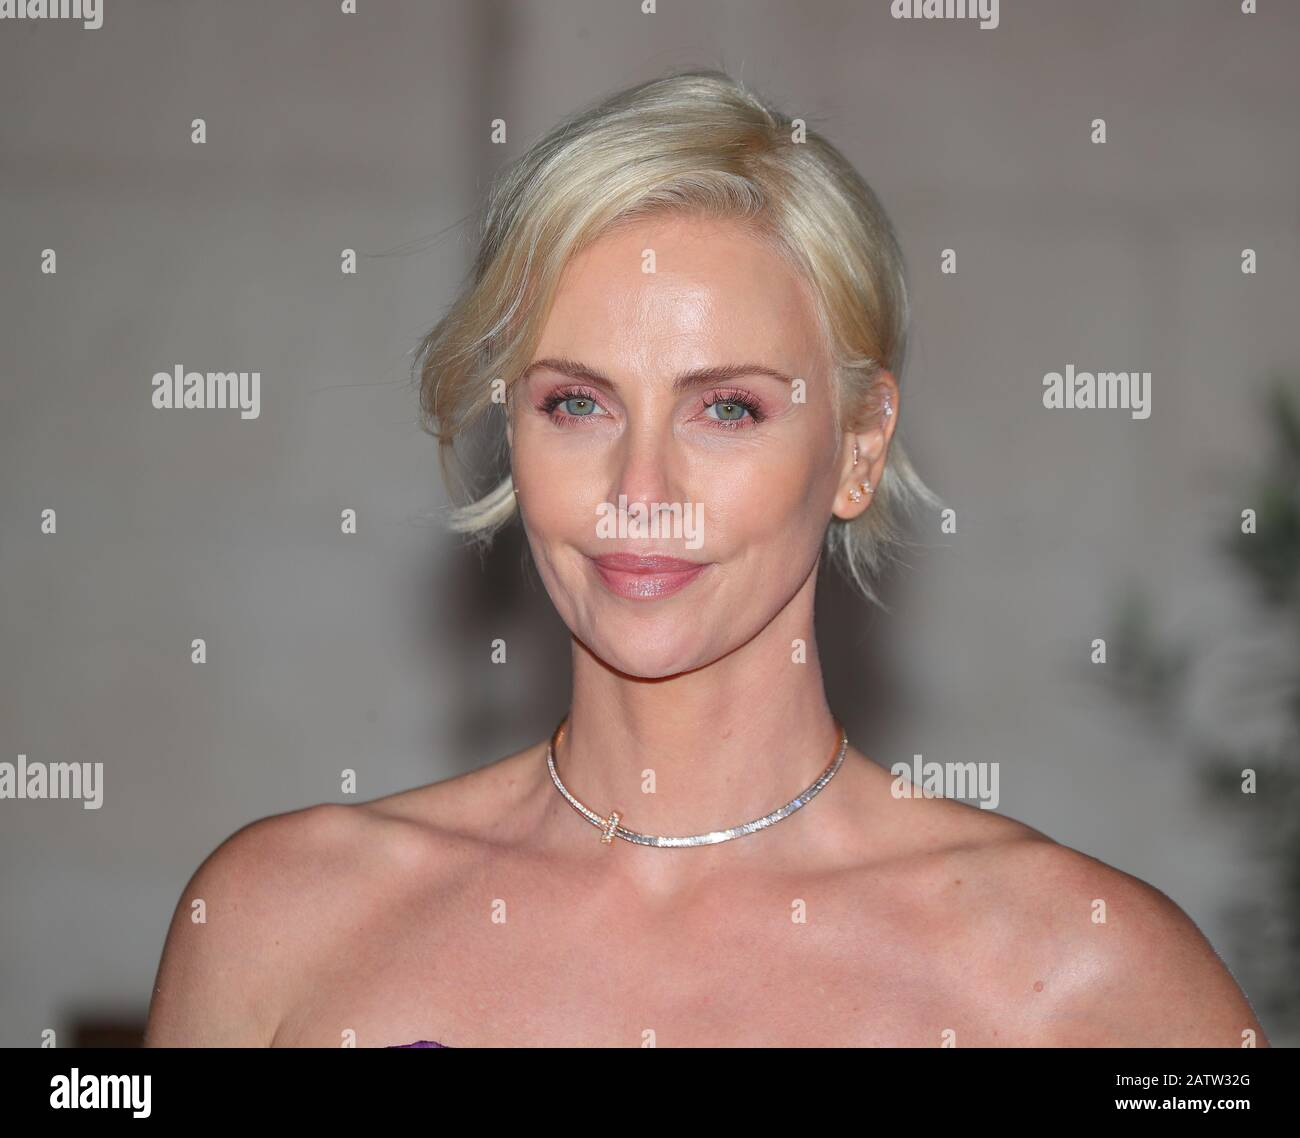 American-South African Actress Charlize Theron attends the EE BAFTA after-party dinner at the Grosvenor House Hotel in London, UK Stock Photo